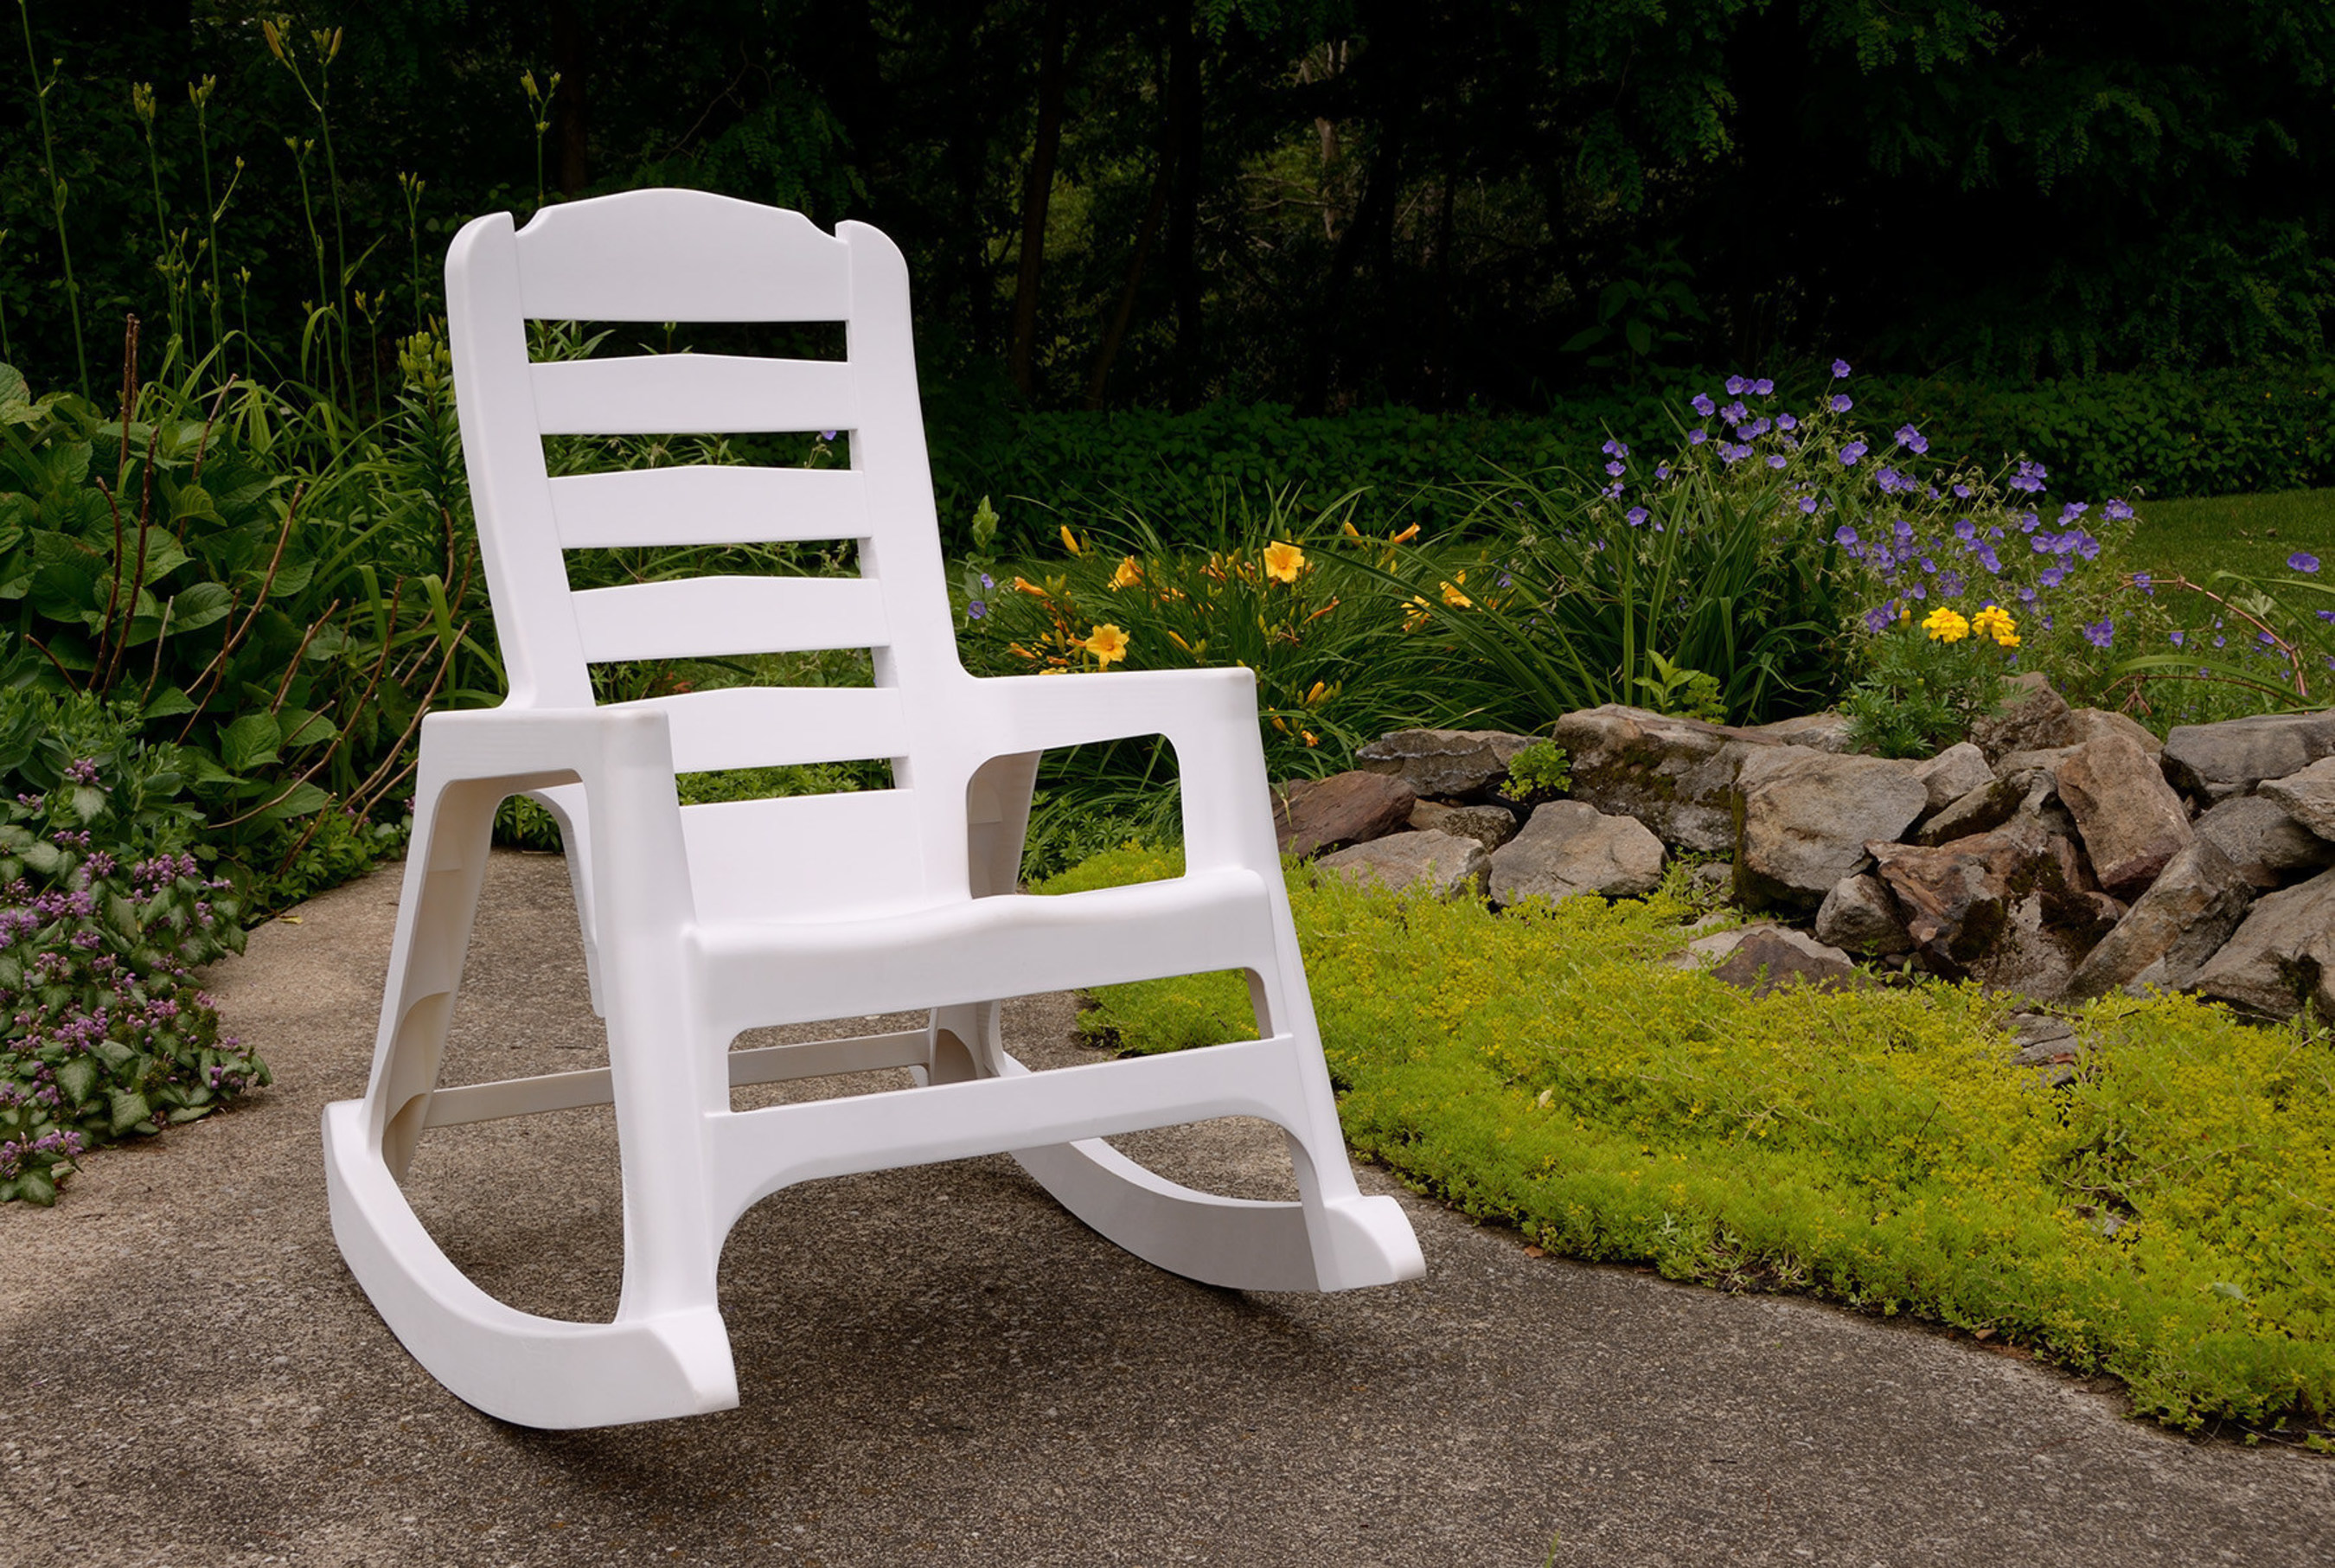 ASTM-rated to hold 350lbs., Adams' Big Easy(TM) Stacking Resin Rocking Chair recalls the carefree days of summer, blending the best qualities of resin into an iconic favorite. An industry first due to its innovative stackable resin design, Adams' Big Easy(TM) Stacking Resin Rocking Chair delivers the look, strength and functionality of more expensive traditional wooden and polyethylene rockers, but at a fraction of the cost.